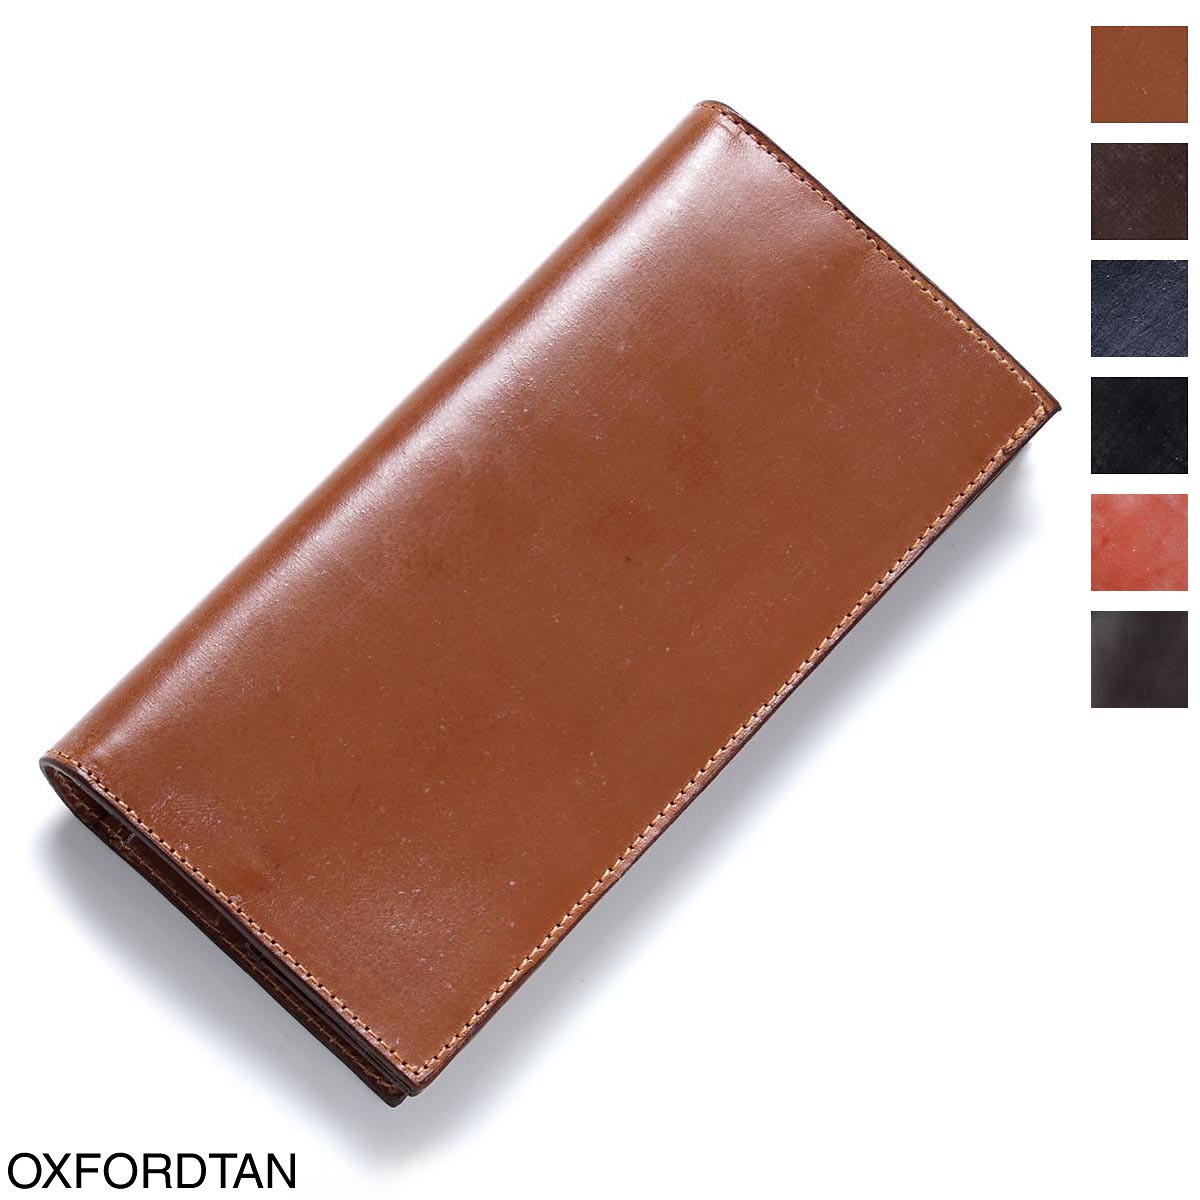 財布・ケース, メンズ財布  GLENROYAL 03 5594 oxfordtan BRIDLE LEATHER LONG WALLET